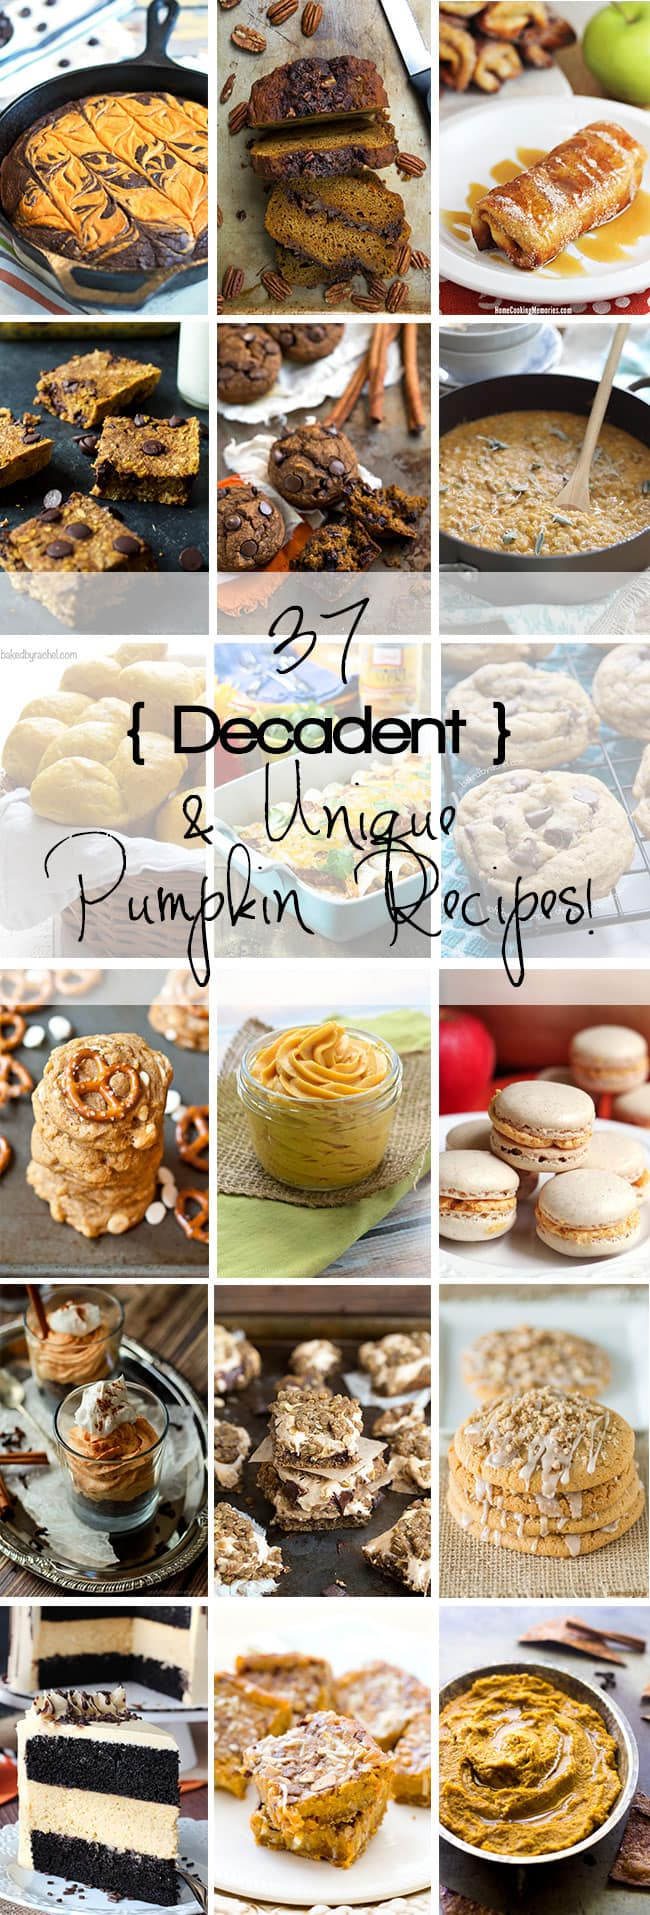 37 unique pumpkin recipes that we all need to add to our 'To Make' list, asap!